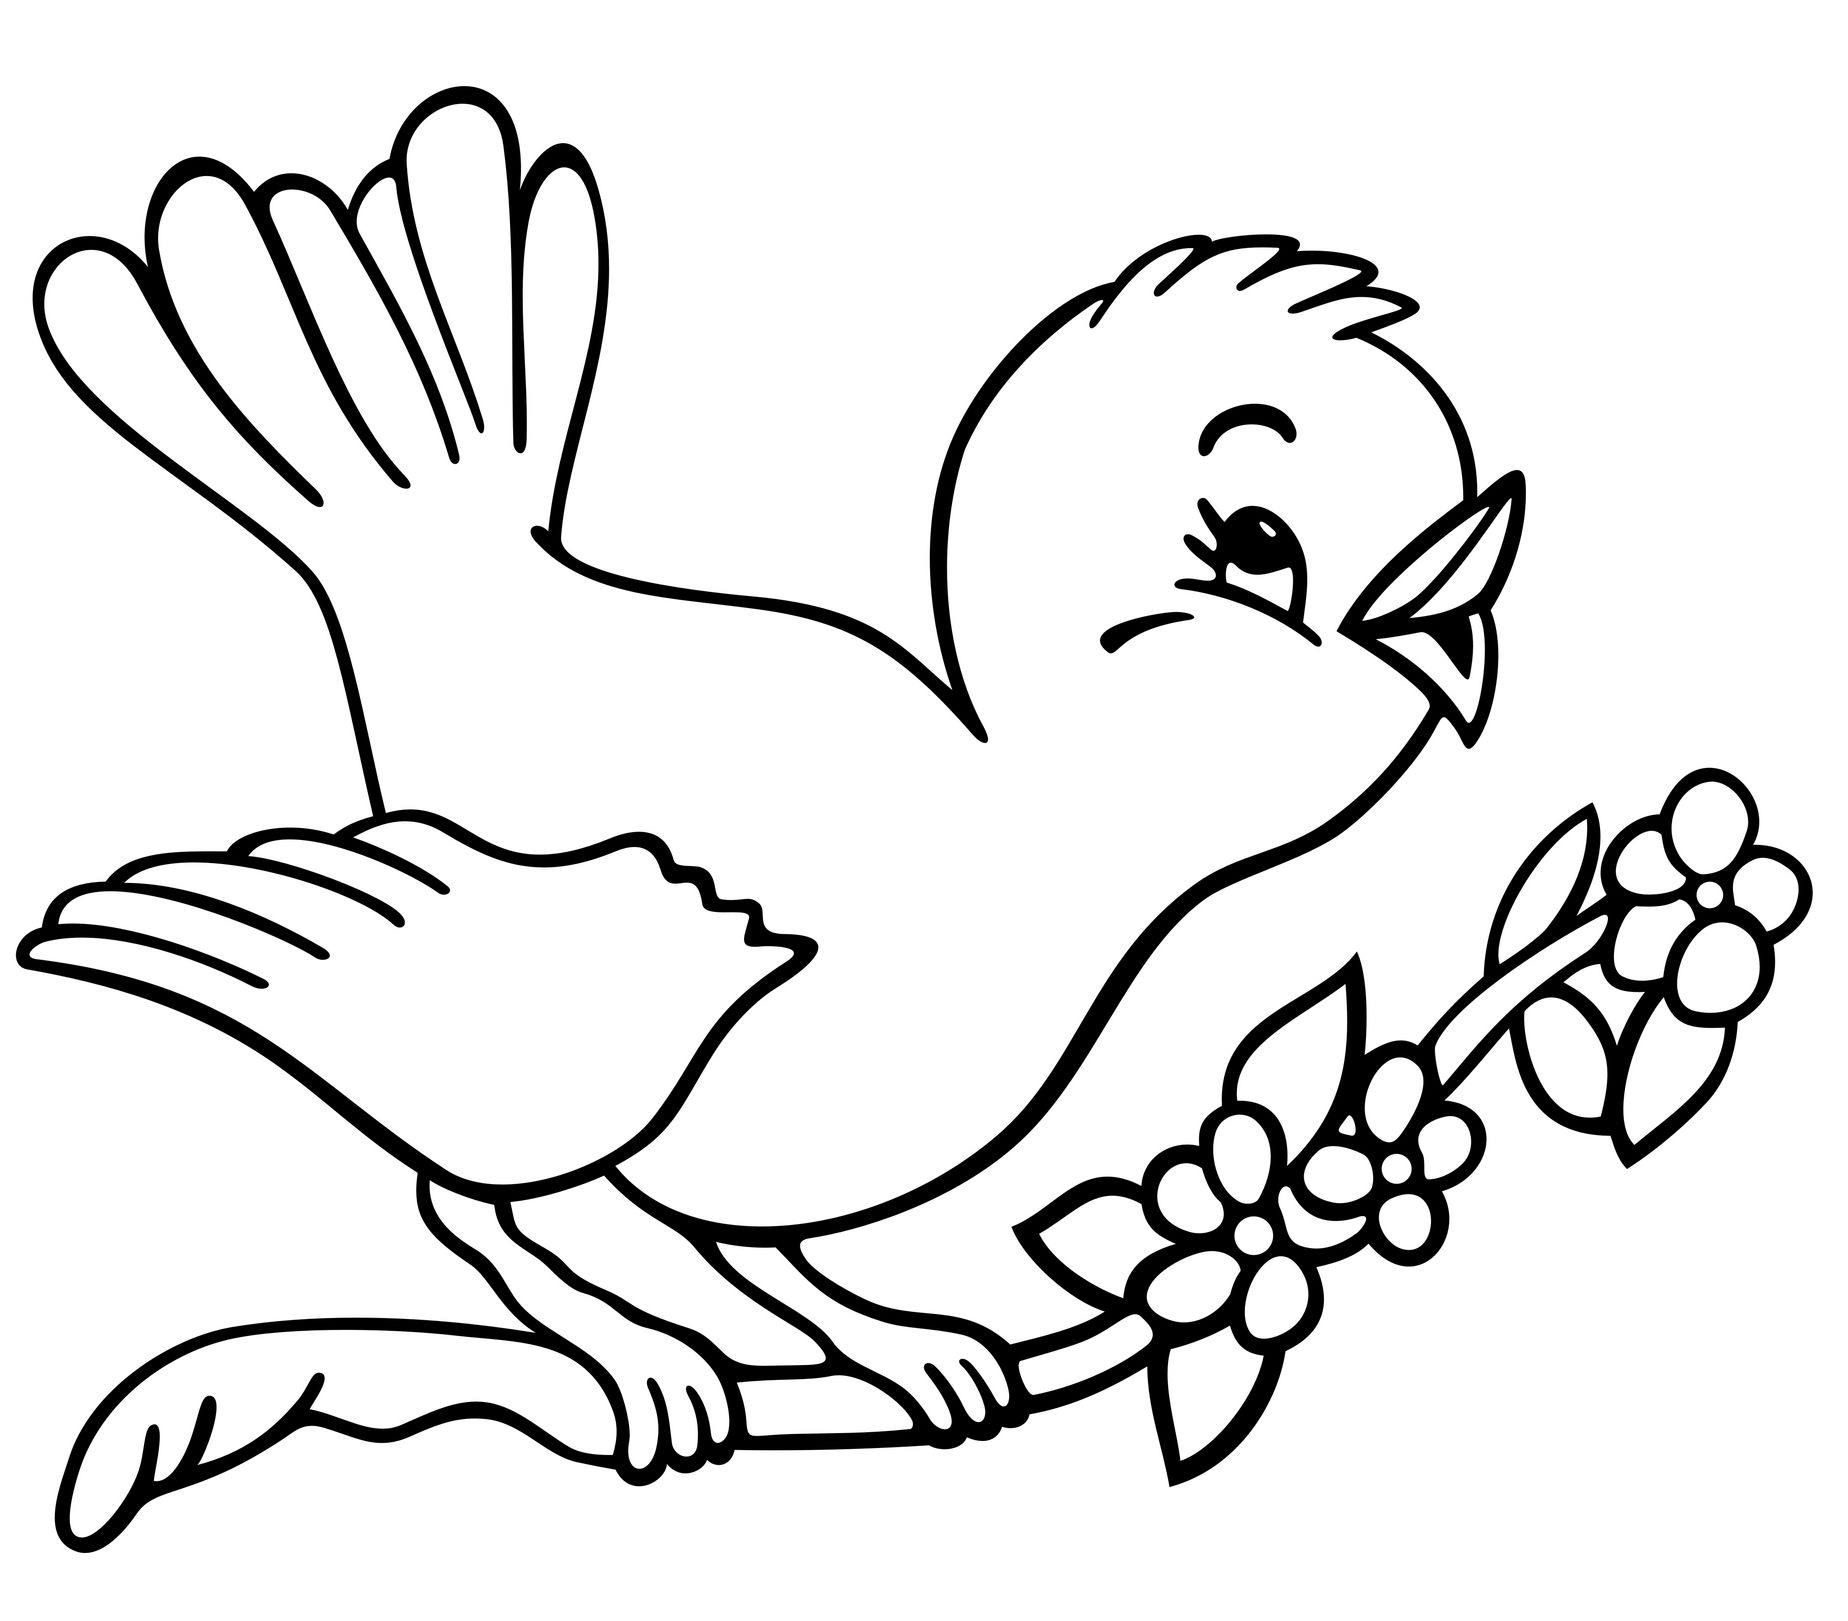 bird coloring pages to print coloring pages for adultscoloring printable spring